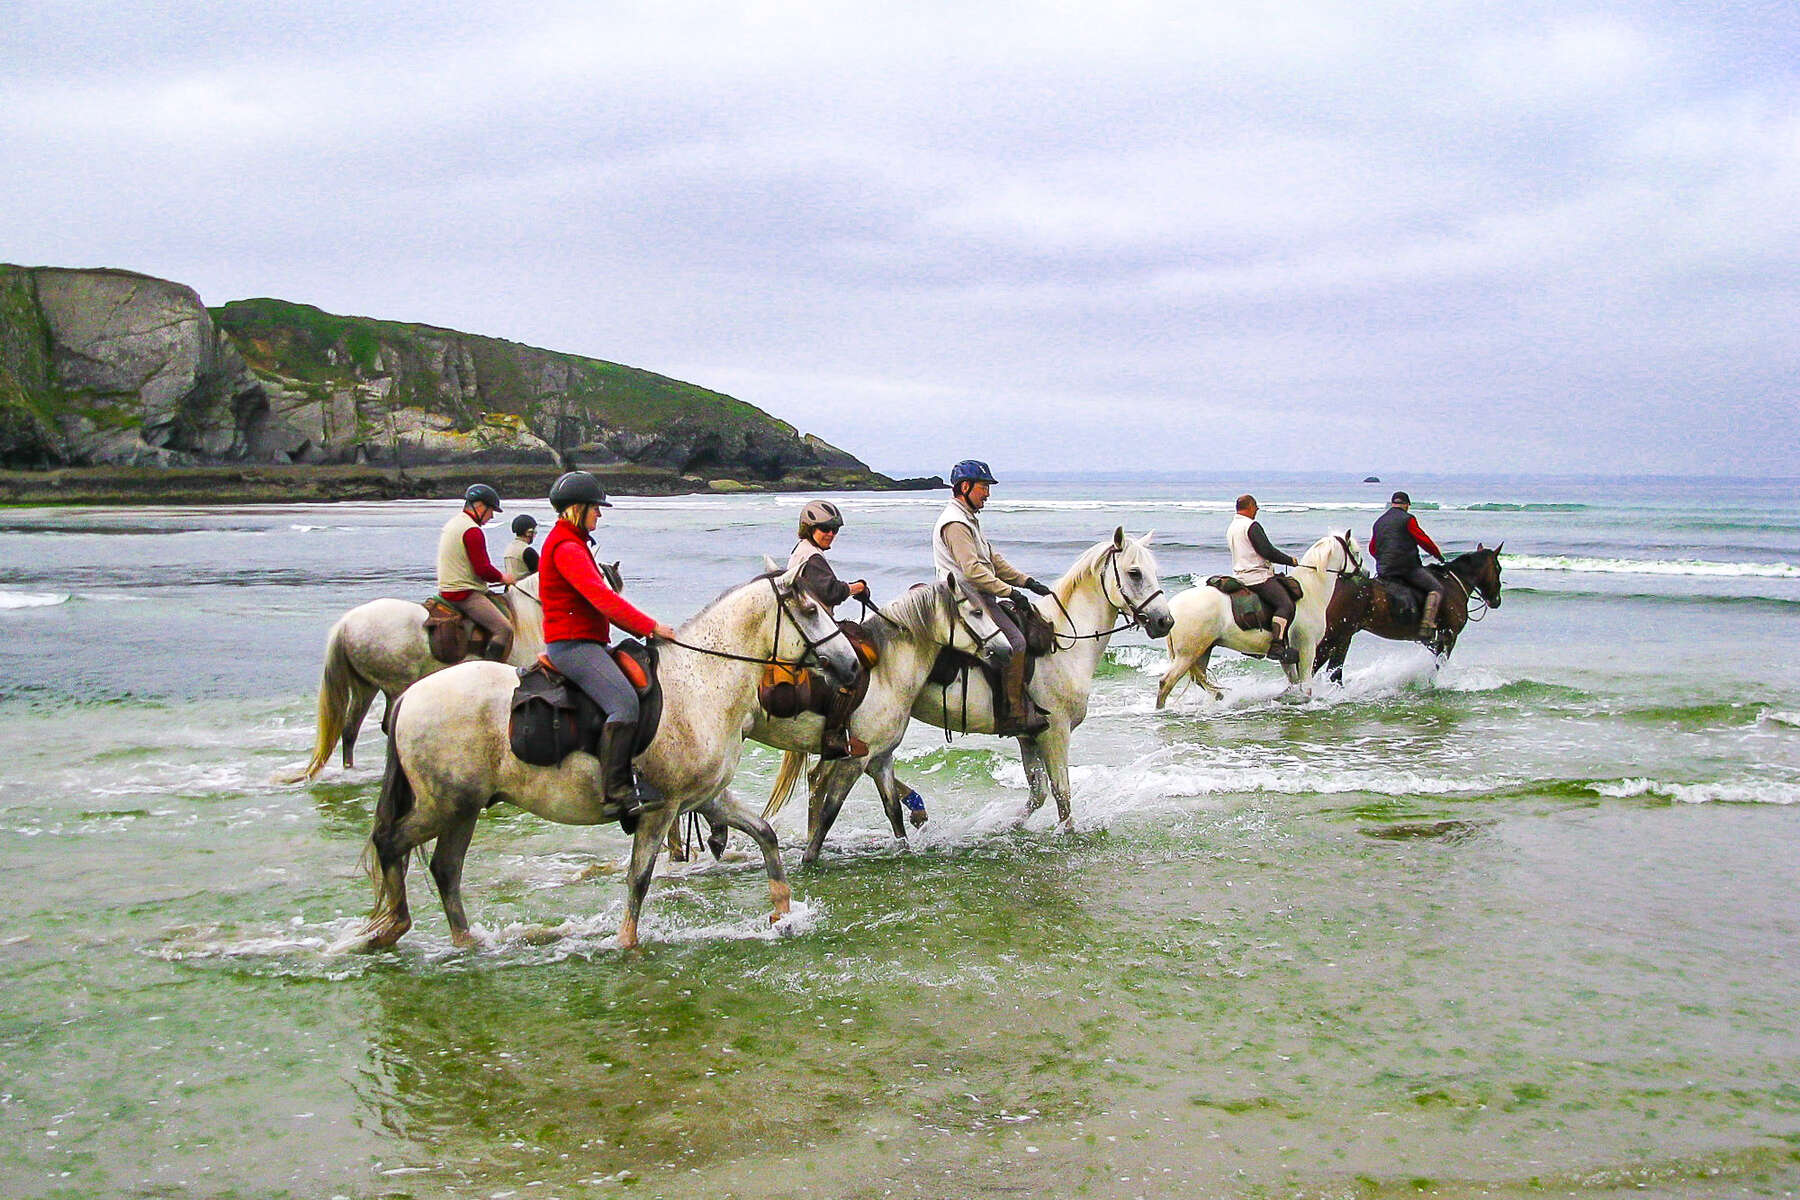 Riders riding their horses into the ocean in France